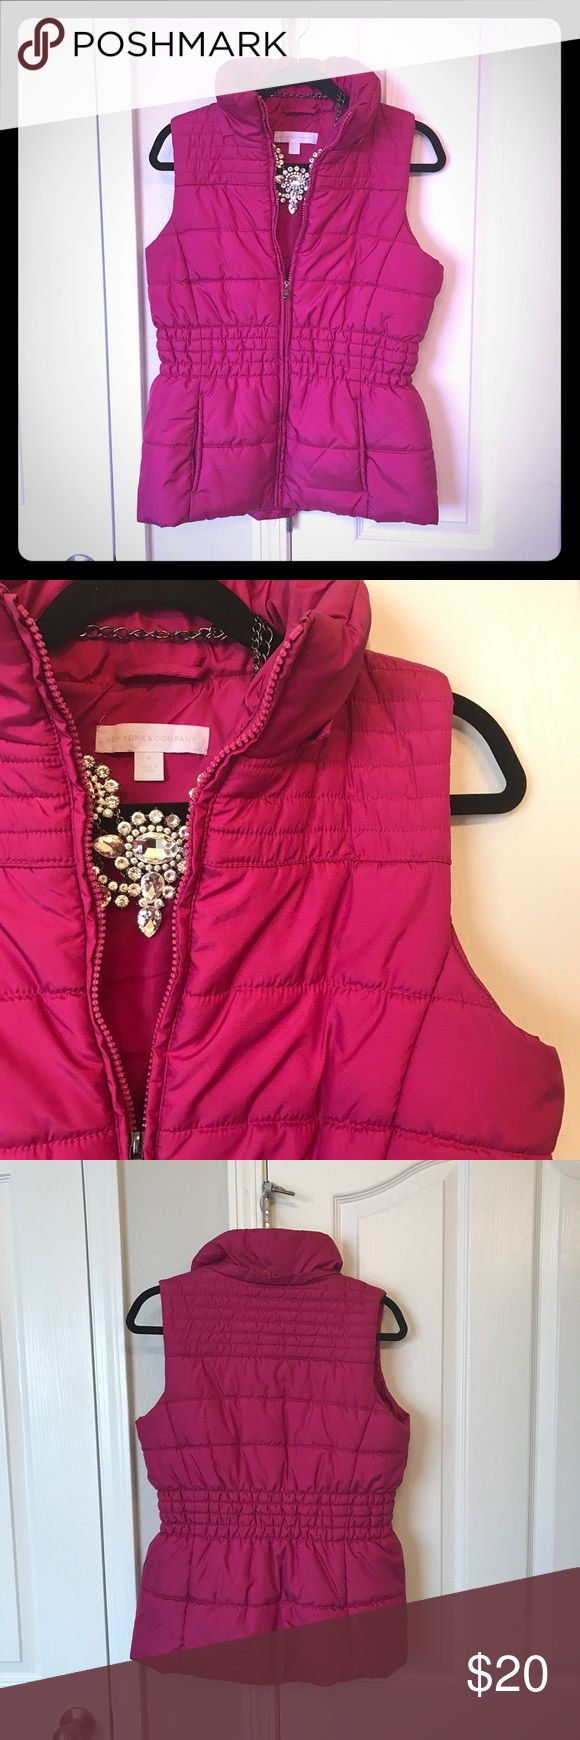 Pink Vest Perfect condition. Super cute! New York & Company Tops